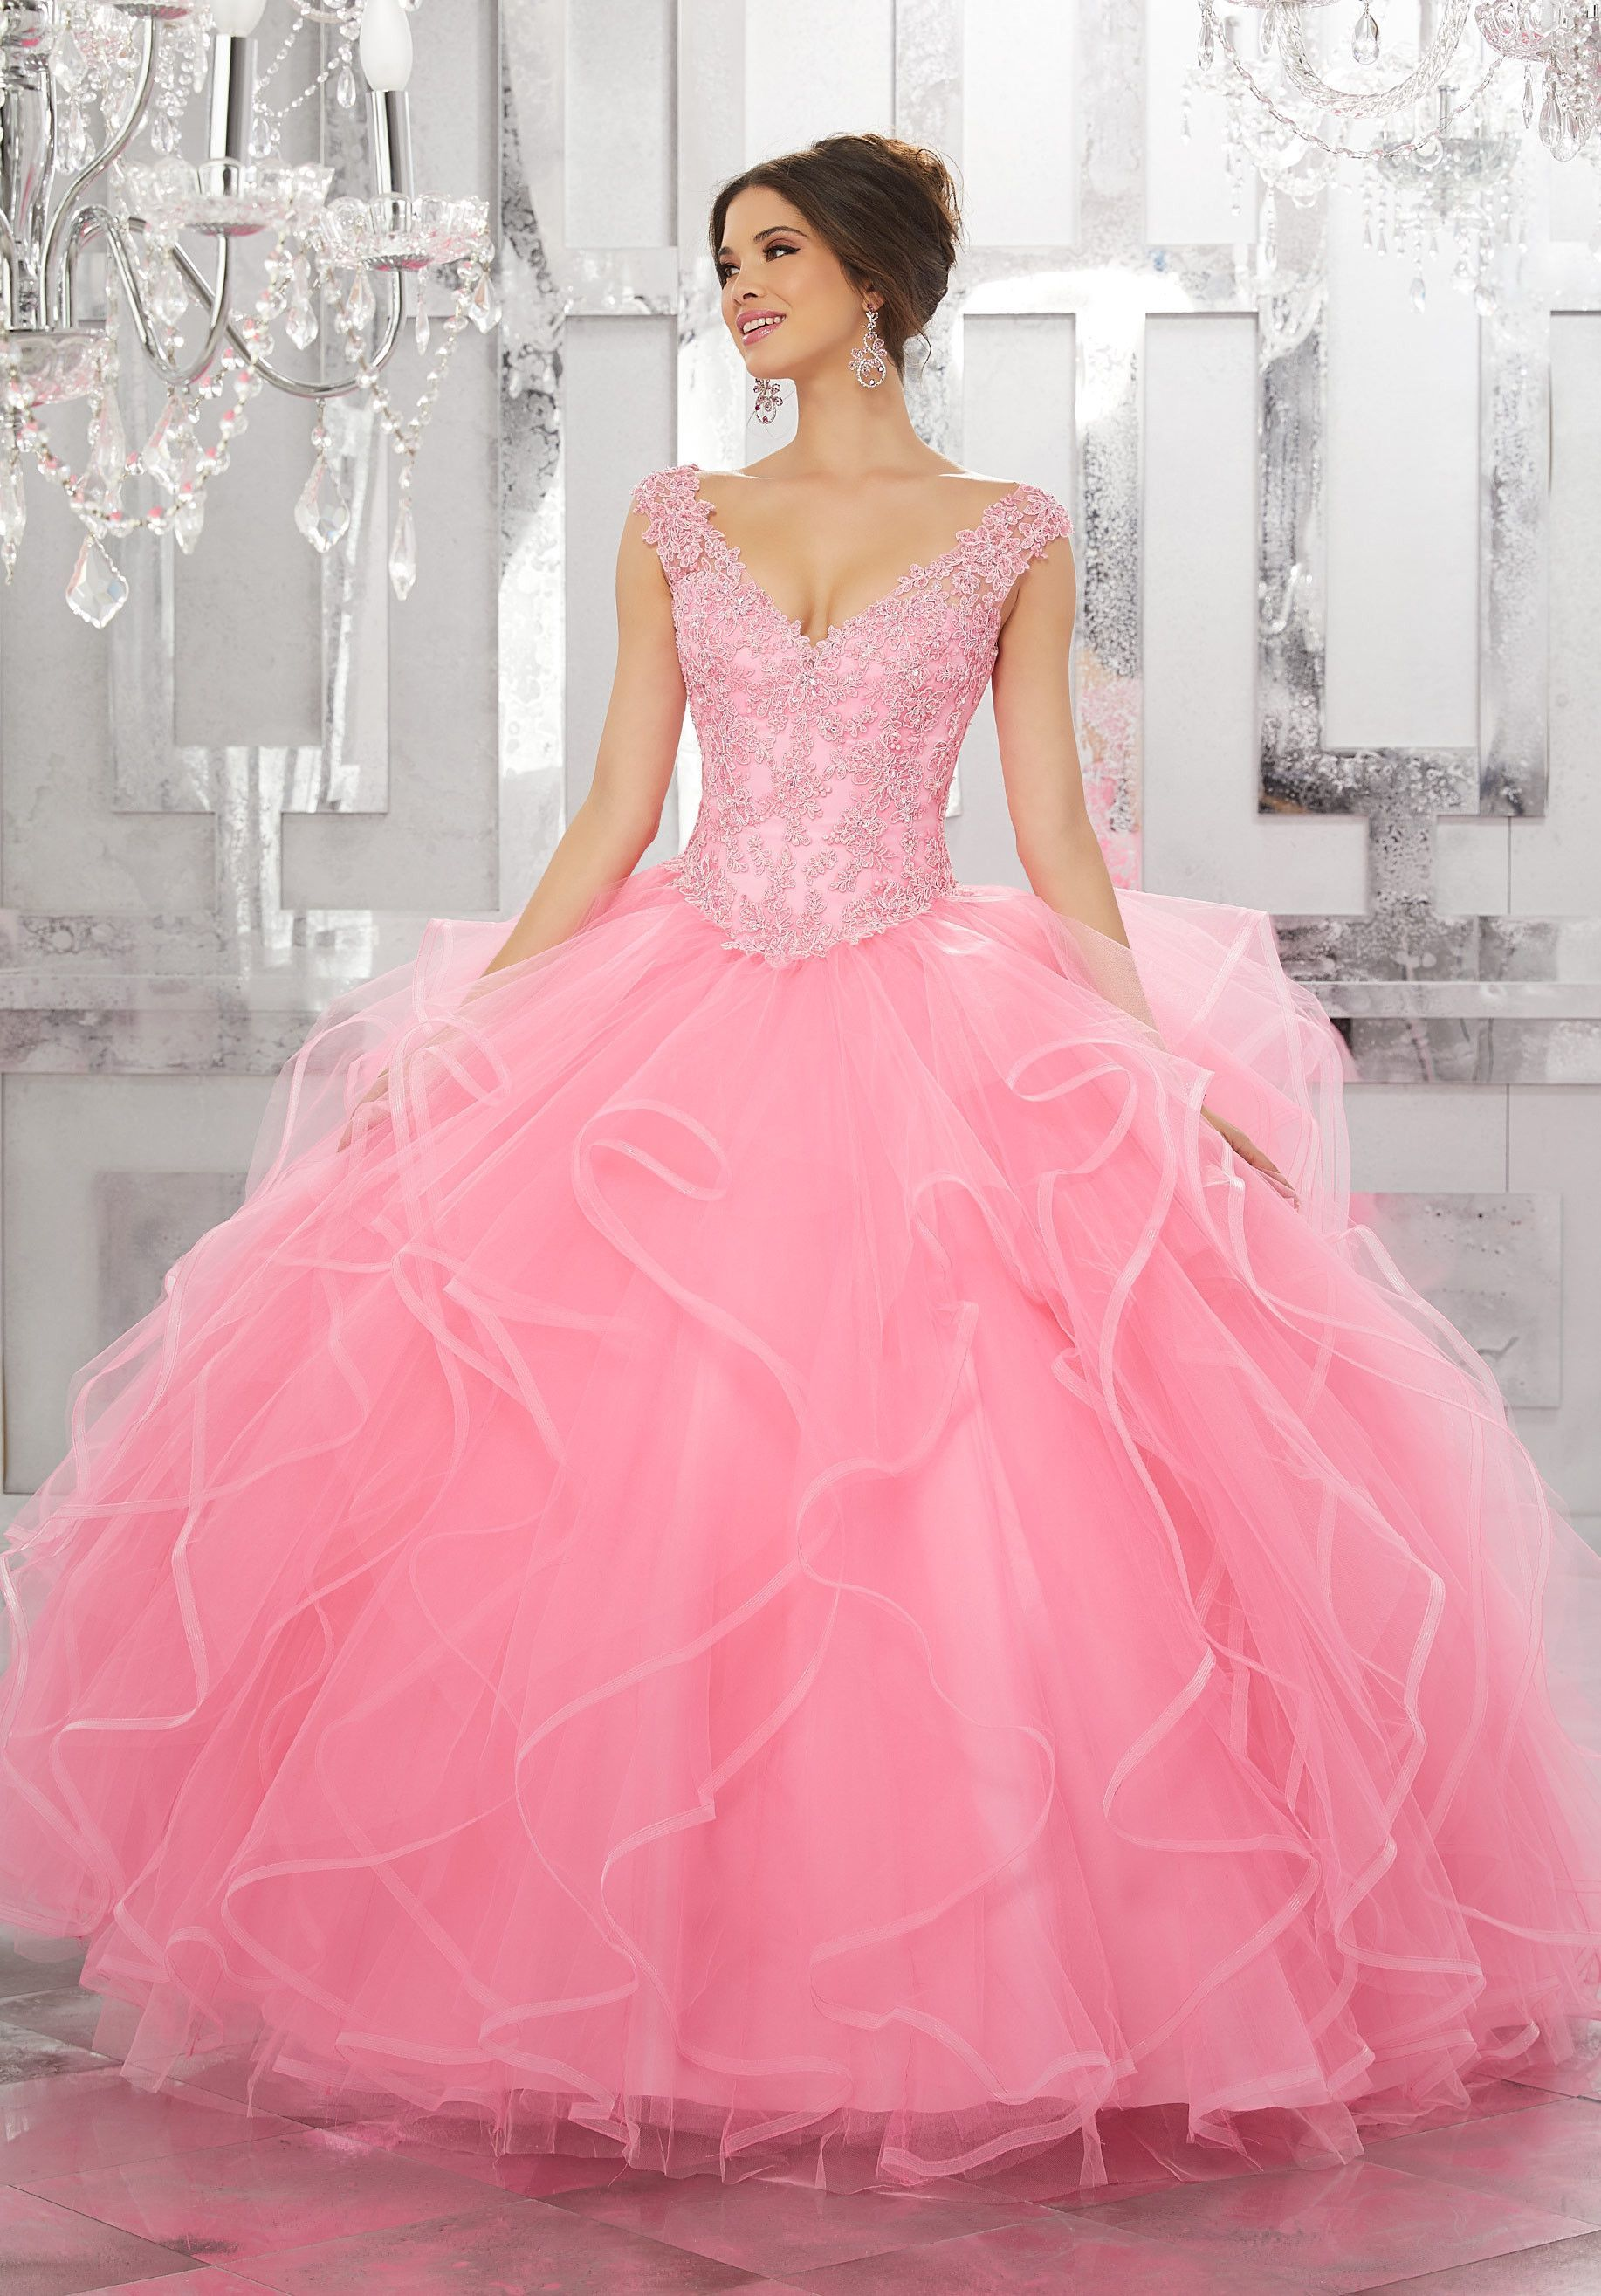 3cdc73662d Off the Shoulder Quinceanera Dress by Mori Lee Valencia 60026 in ...